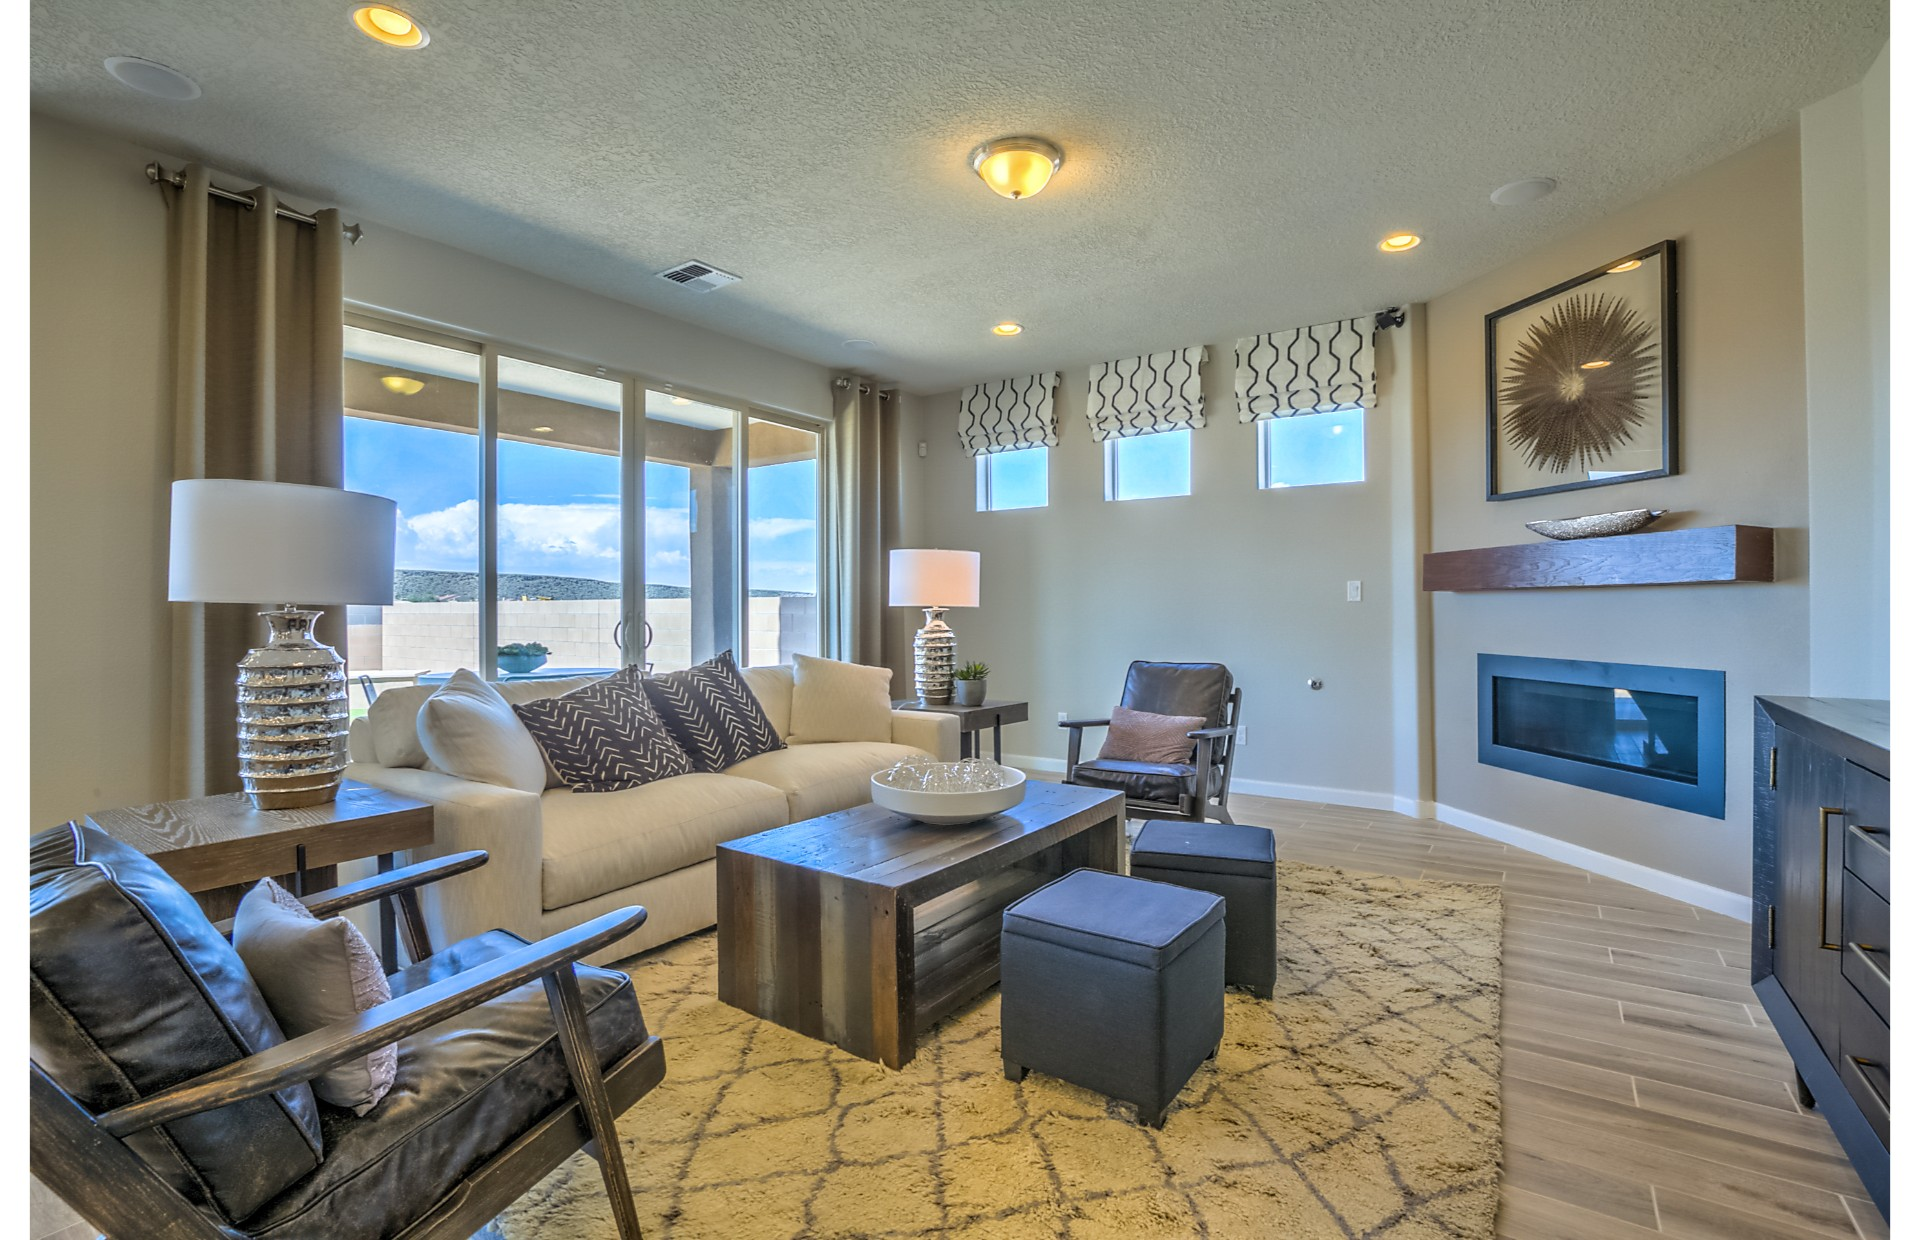 The Ridge at Stormcloud by Pulte Homes image 3